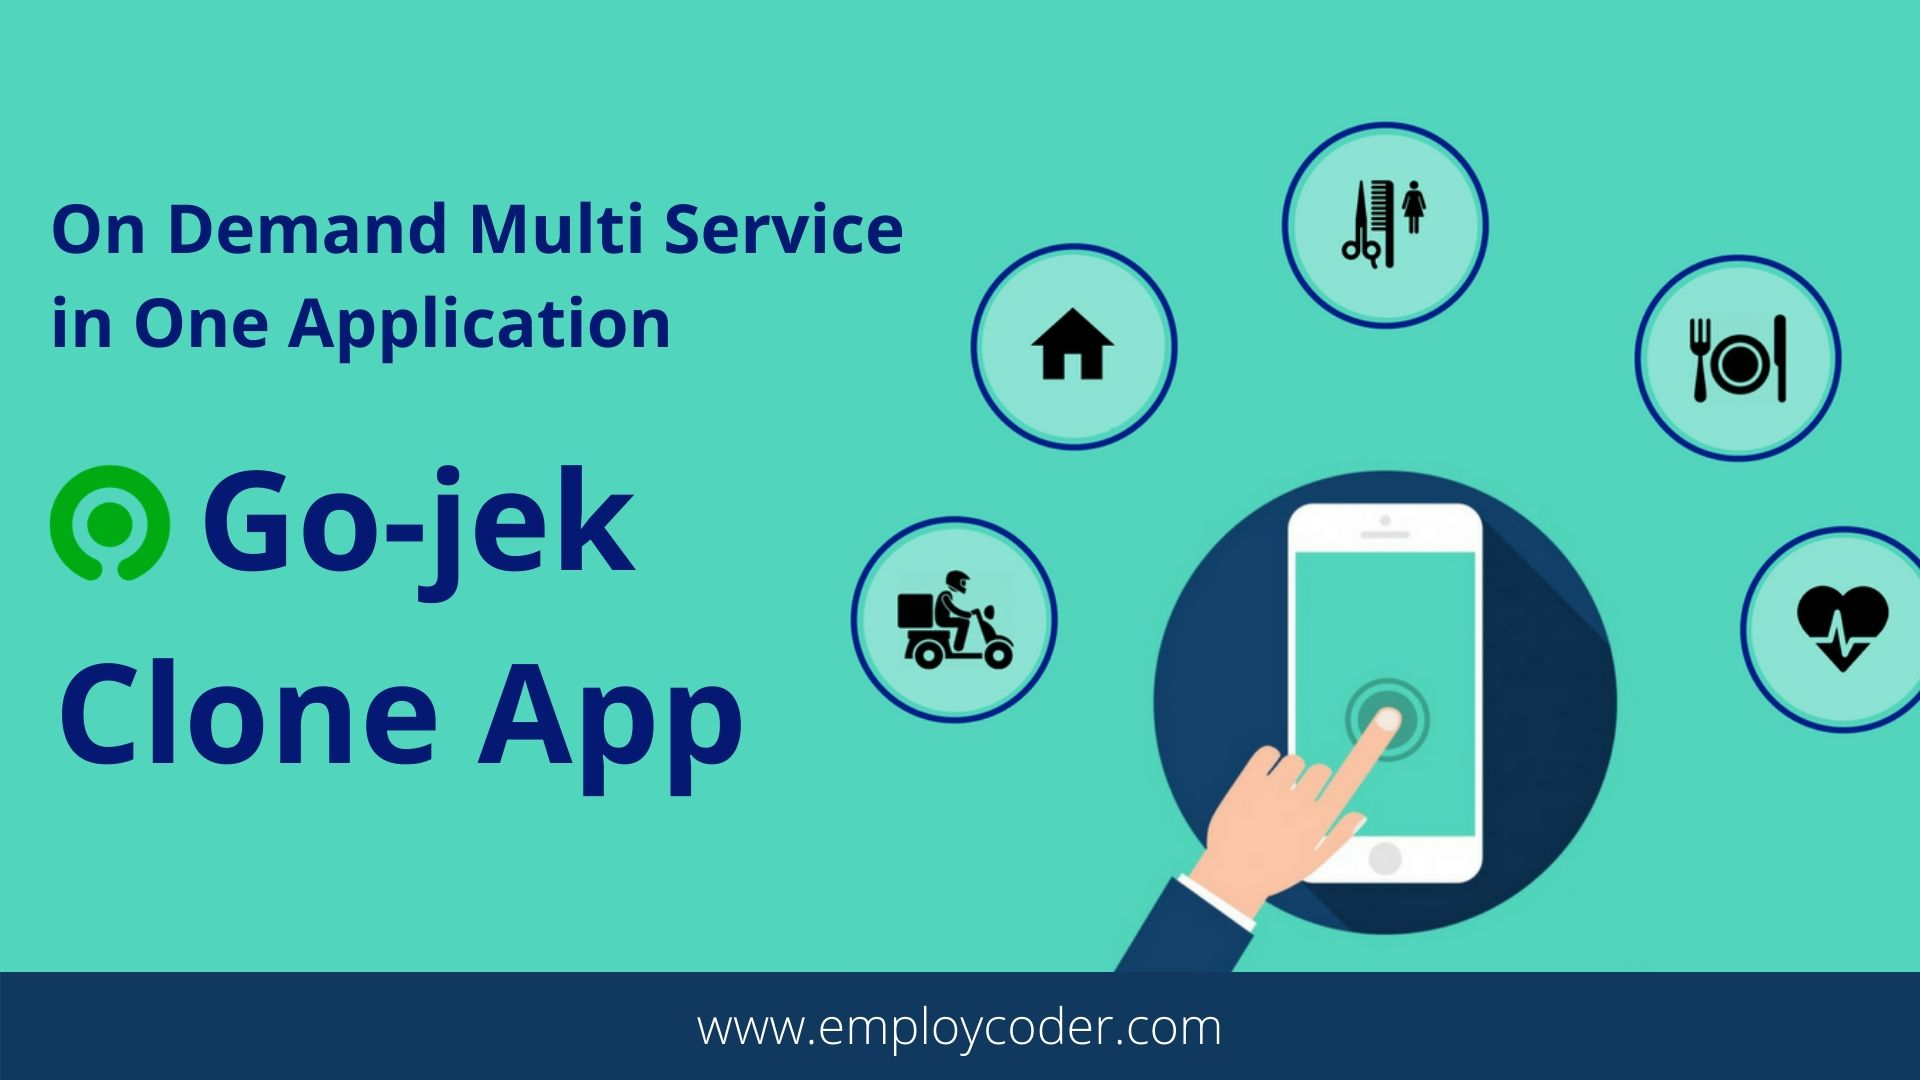 Gojek Clone App - Start Your Own On-Demand Multi Service Application